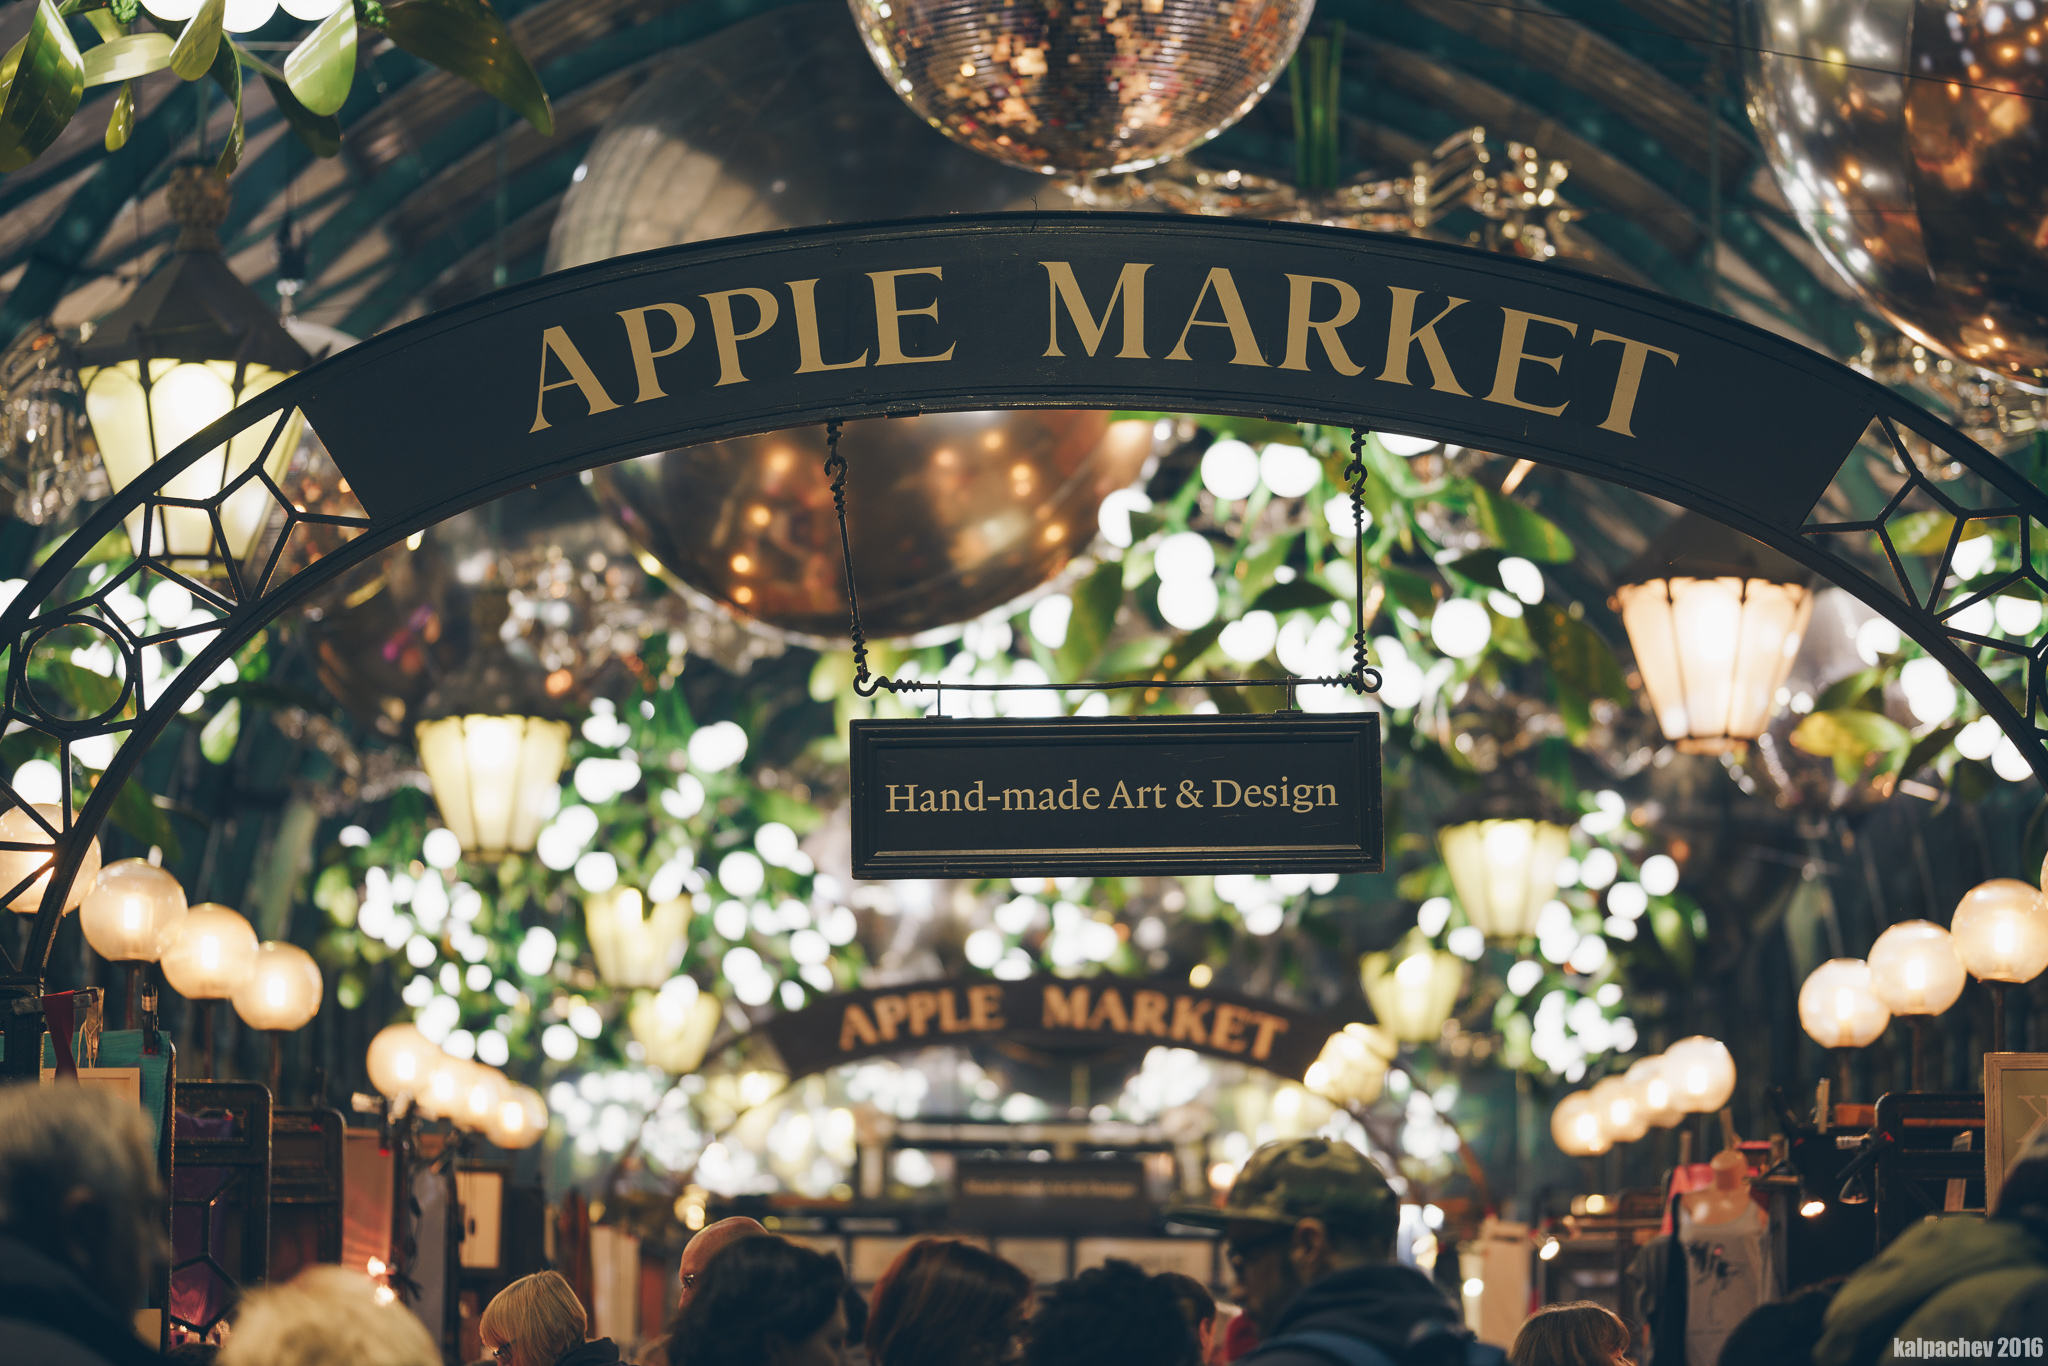 Apple Market | Covent Garden with LAOWA 105MM F/2 STF